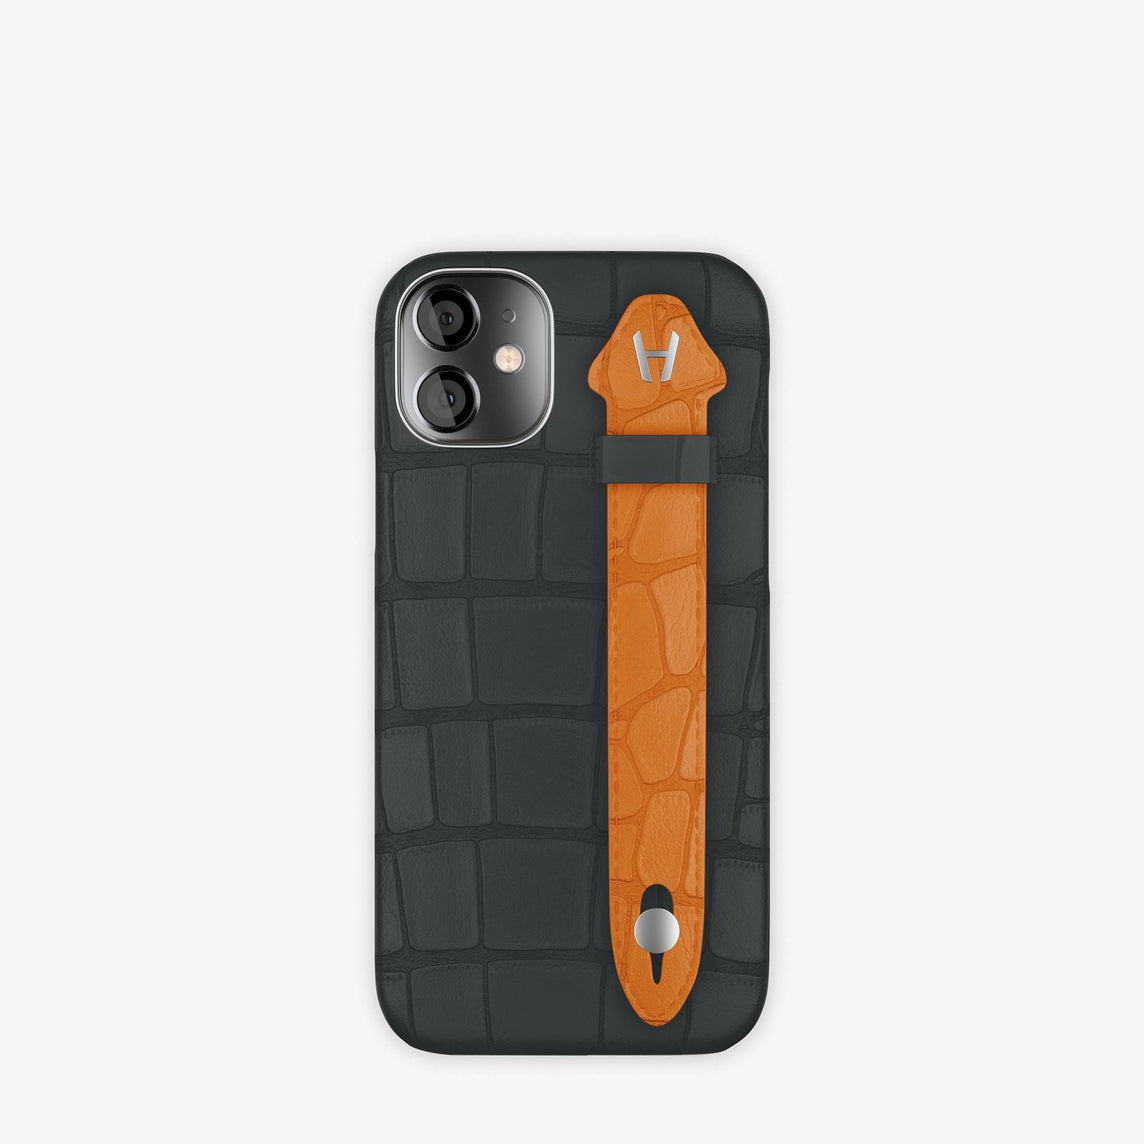 Alligator Side Finger Case iPhone 12 Mini | Anthracite/Orange Apricot -Stainless Steel